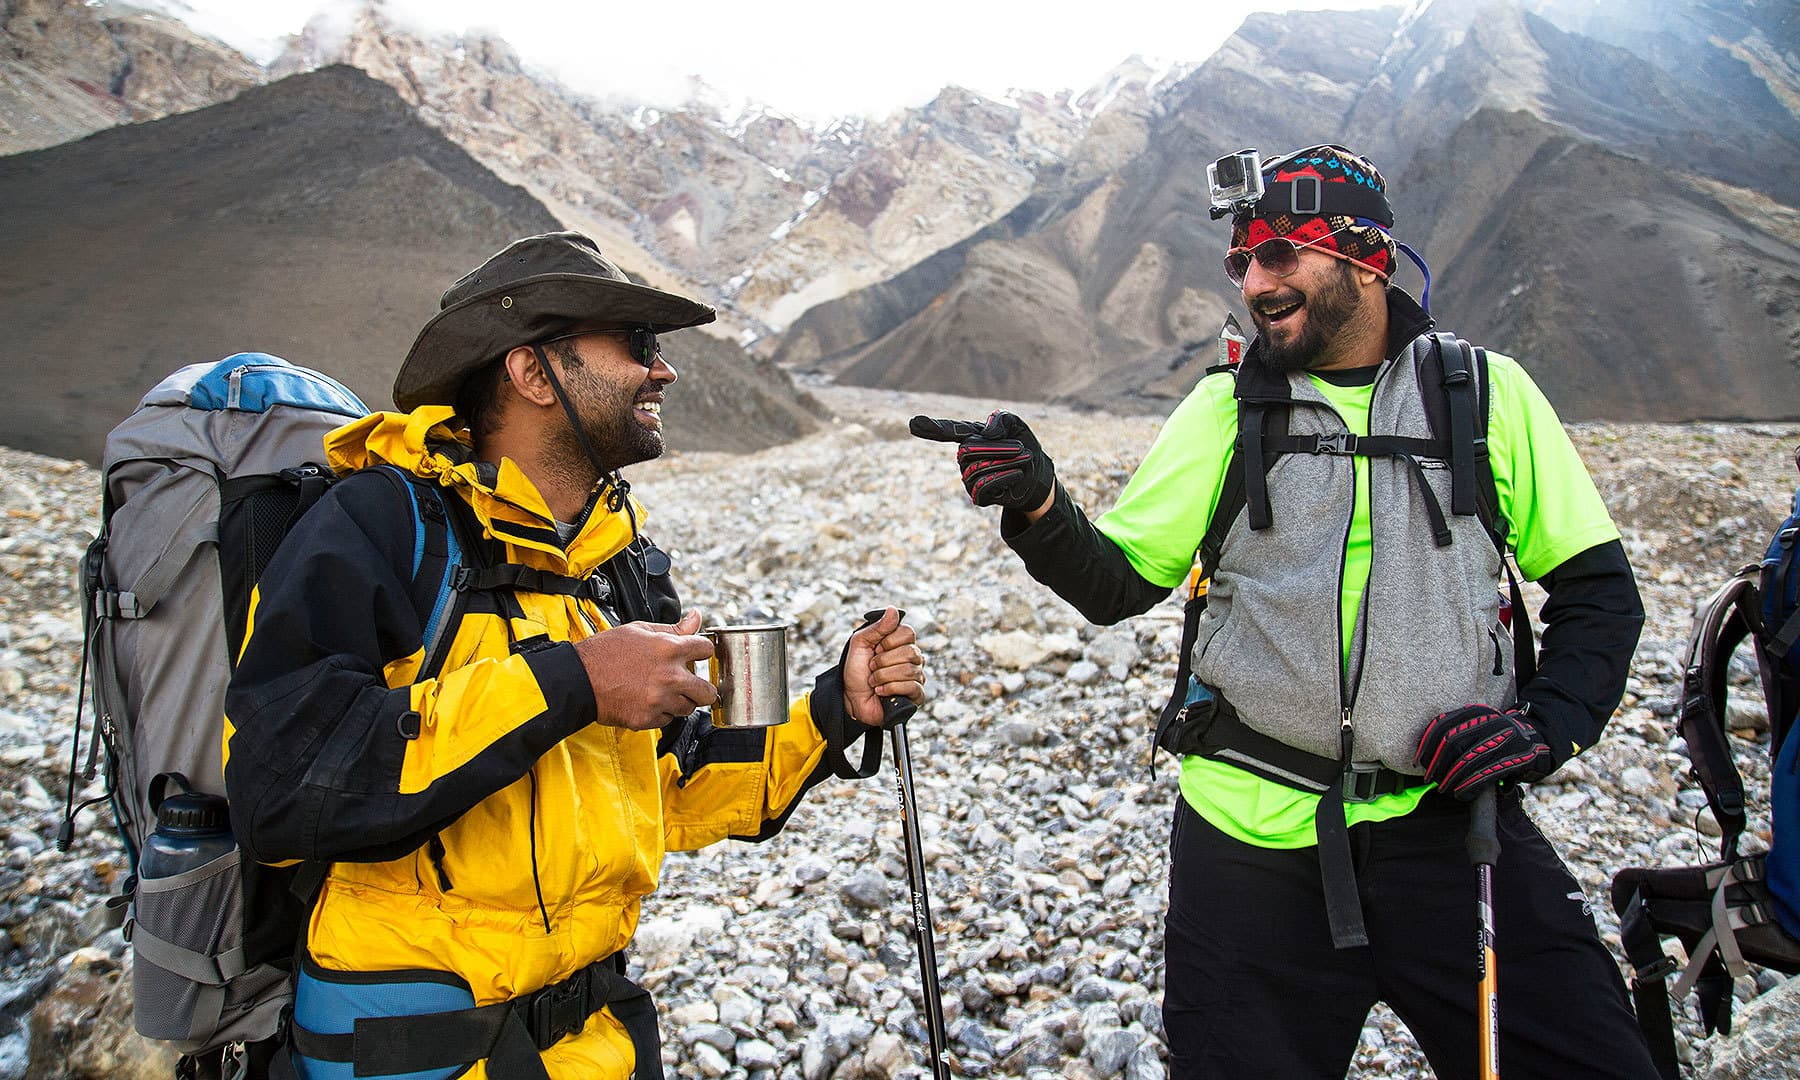 Light mood: Gup shup over a cup of black coffee before we start climbing the Shpoadeen Pass.